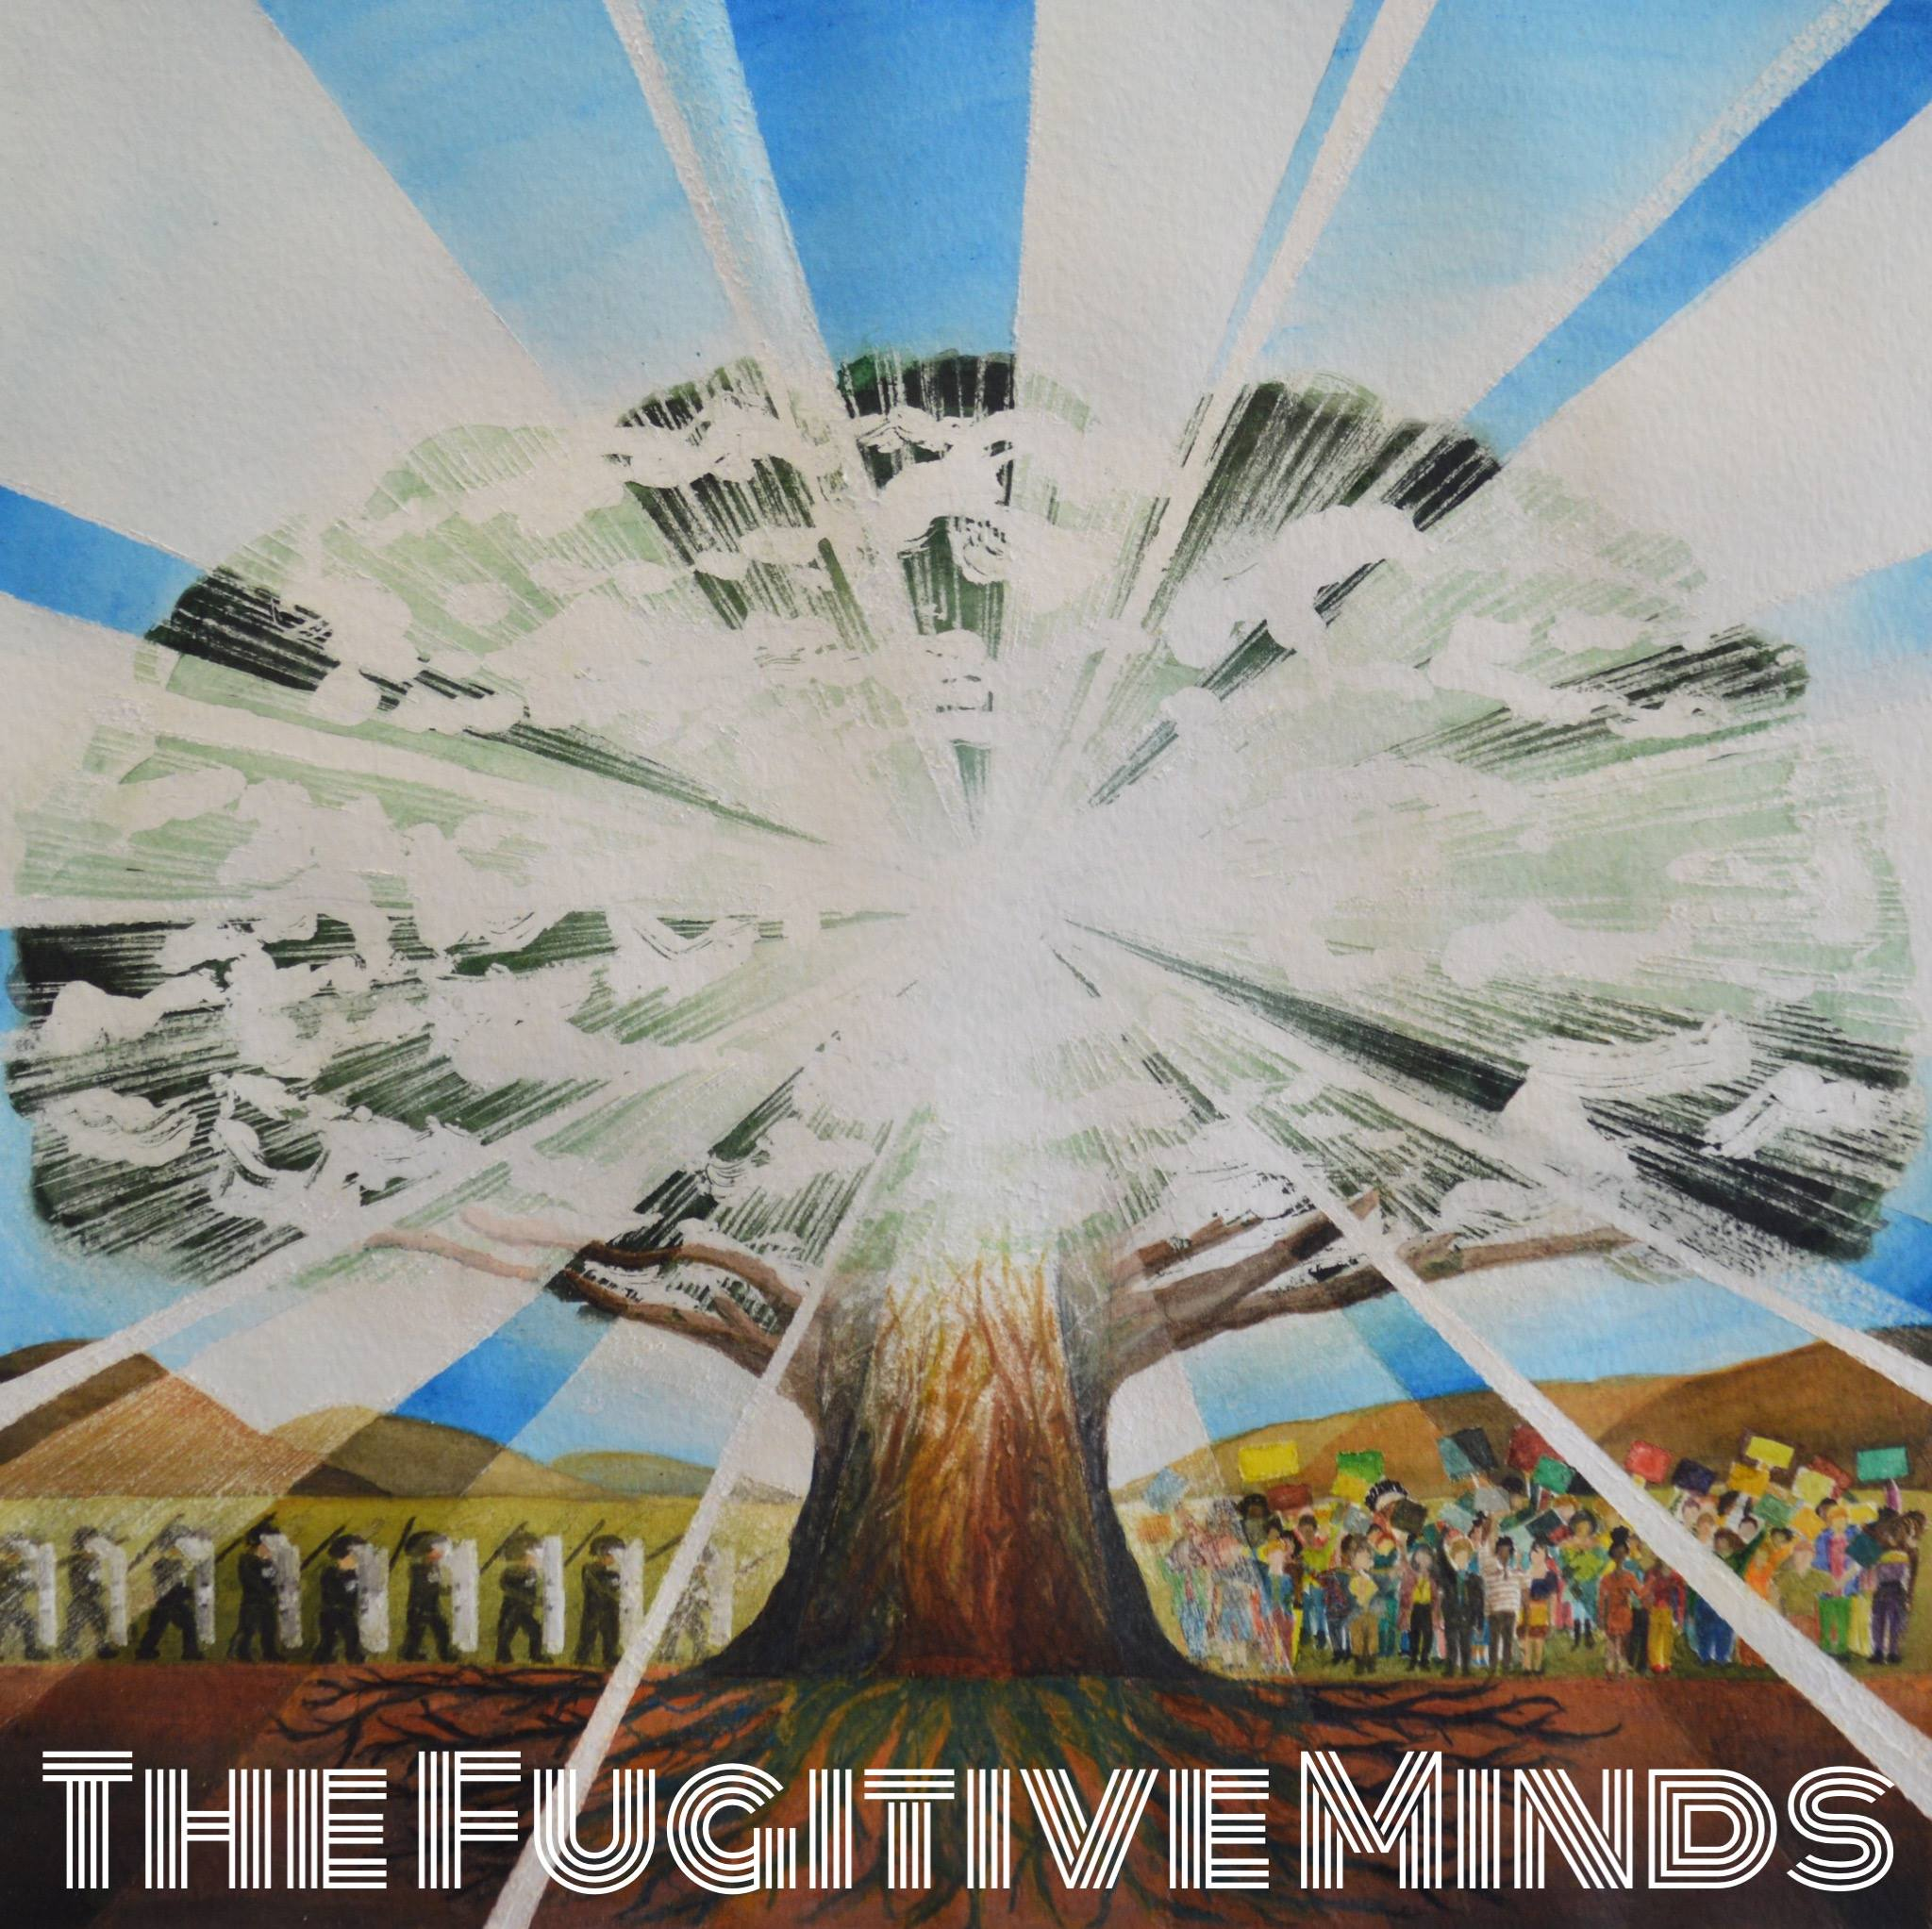 The Fugitive Minds